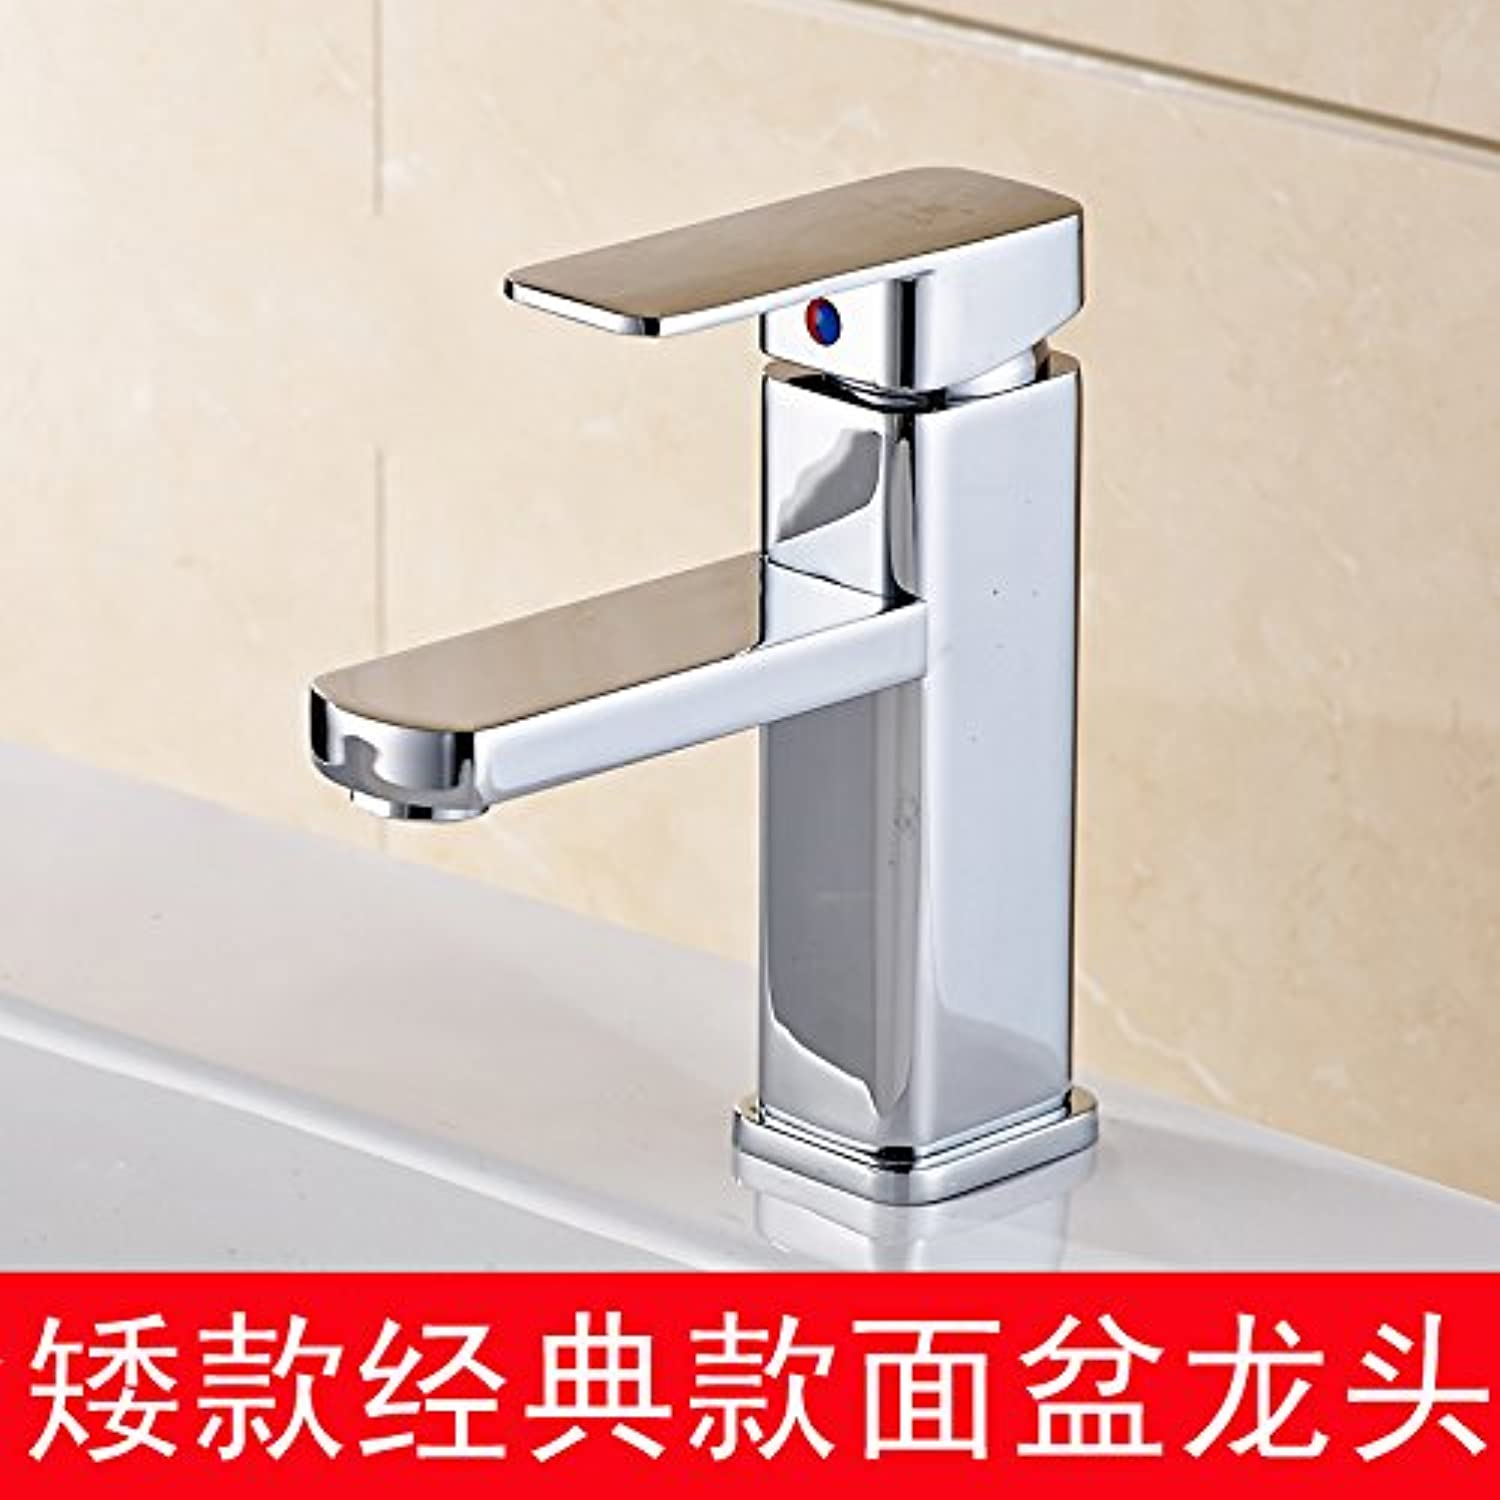 LHbox Basin Mixer Tap Bathroom Sink Faucet All copper pull-down basin faucet and cold water pull on the high basin shampoo basin faucet, classic low) basin mixer